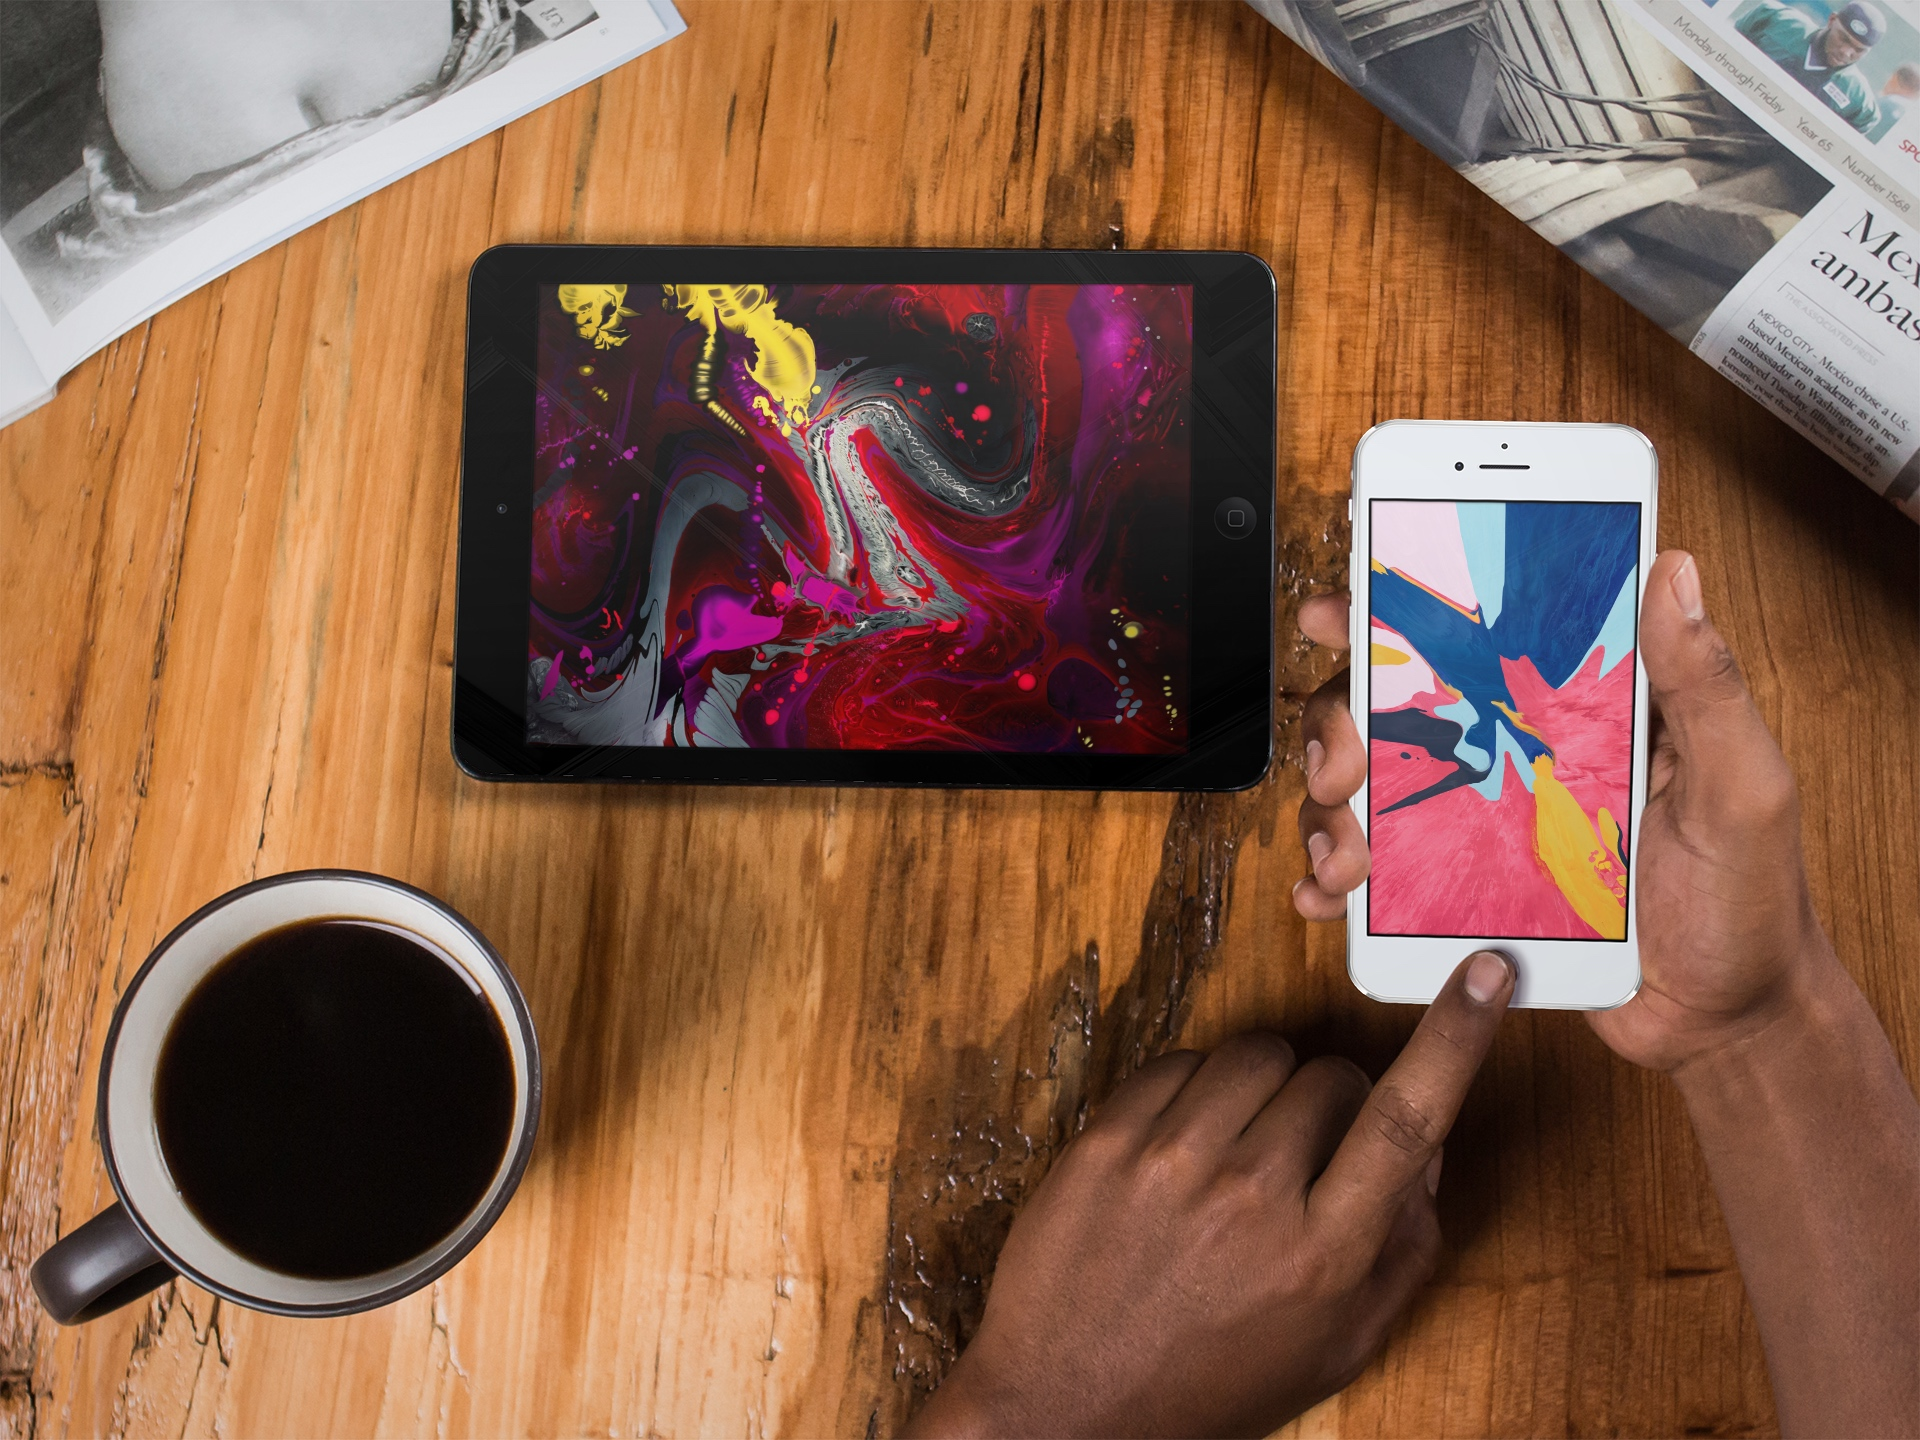 Download: iPad Pro and MacBook Air wallpapers for iPhone and iPad